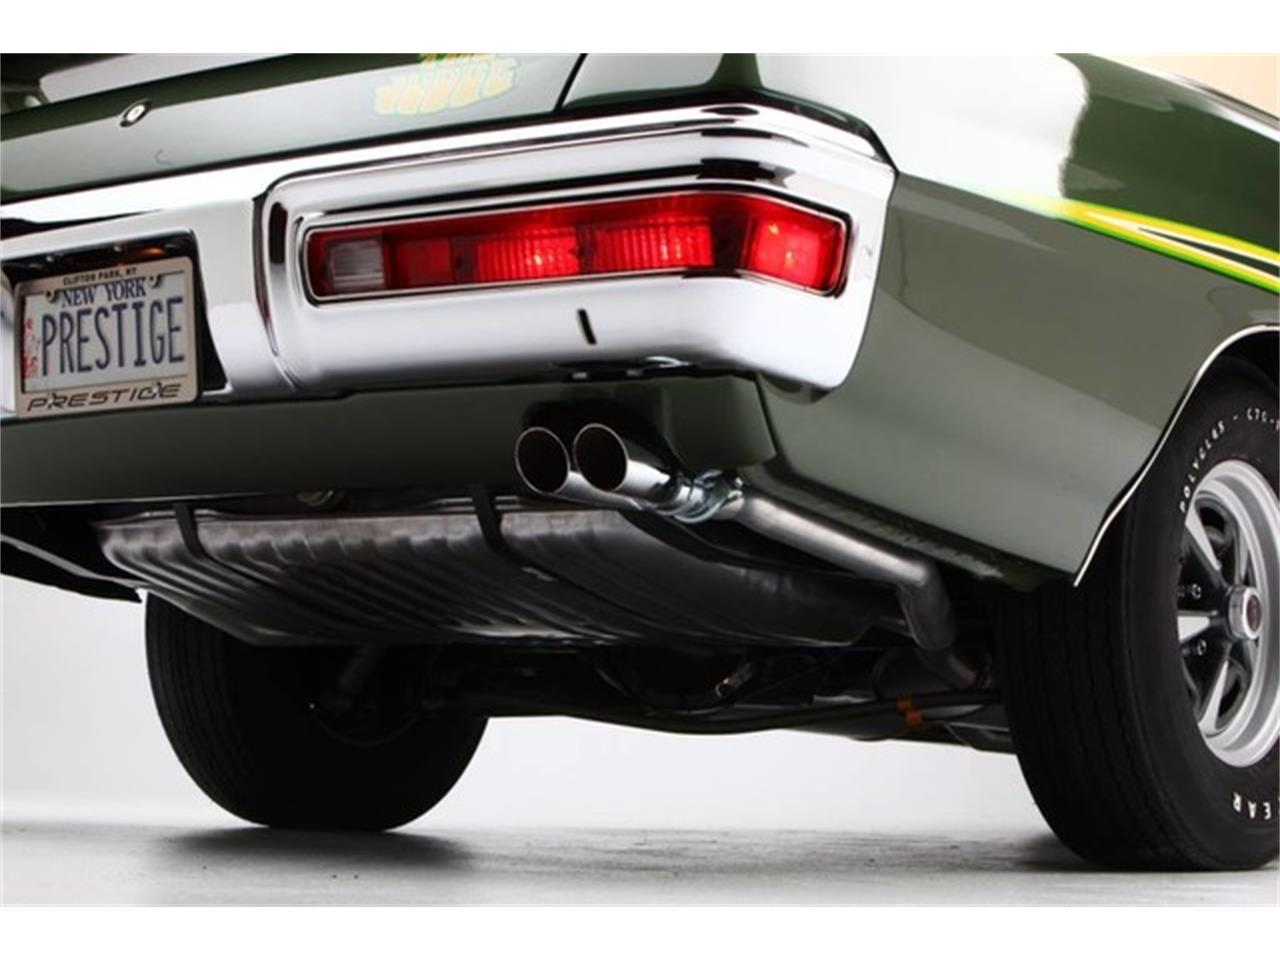 Large Picture of Classic '70 Pontiac GTO (The Judge) - $219,000.00 Offered by Prestige Motor Car Co. - PU25